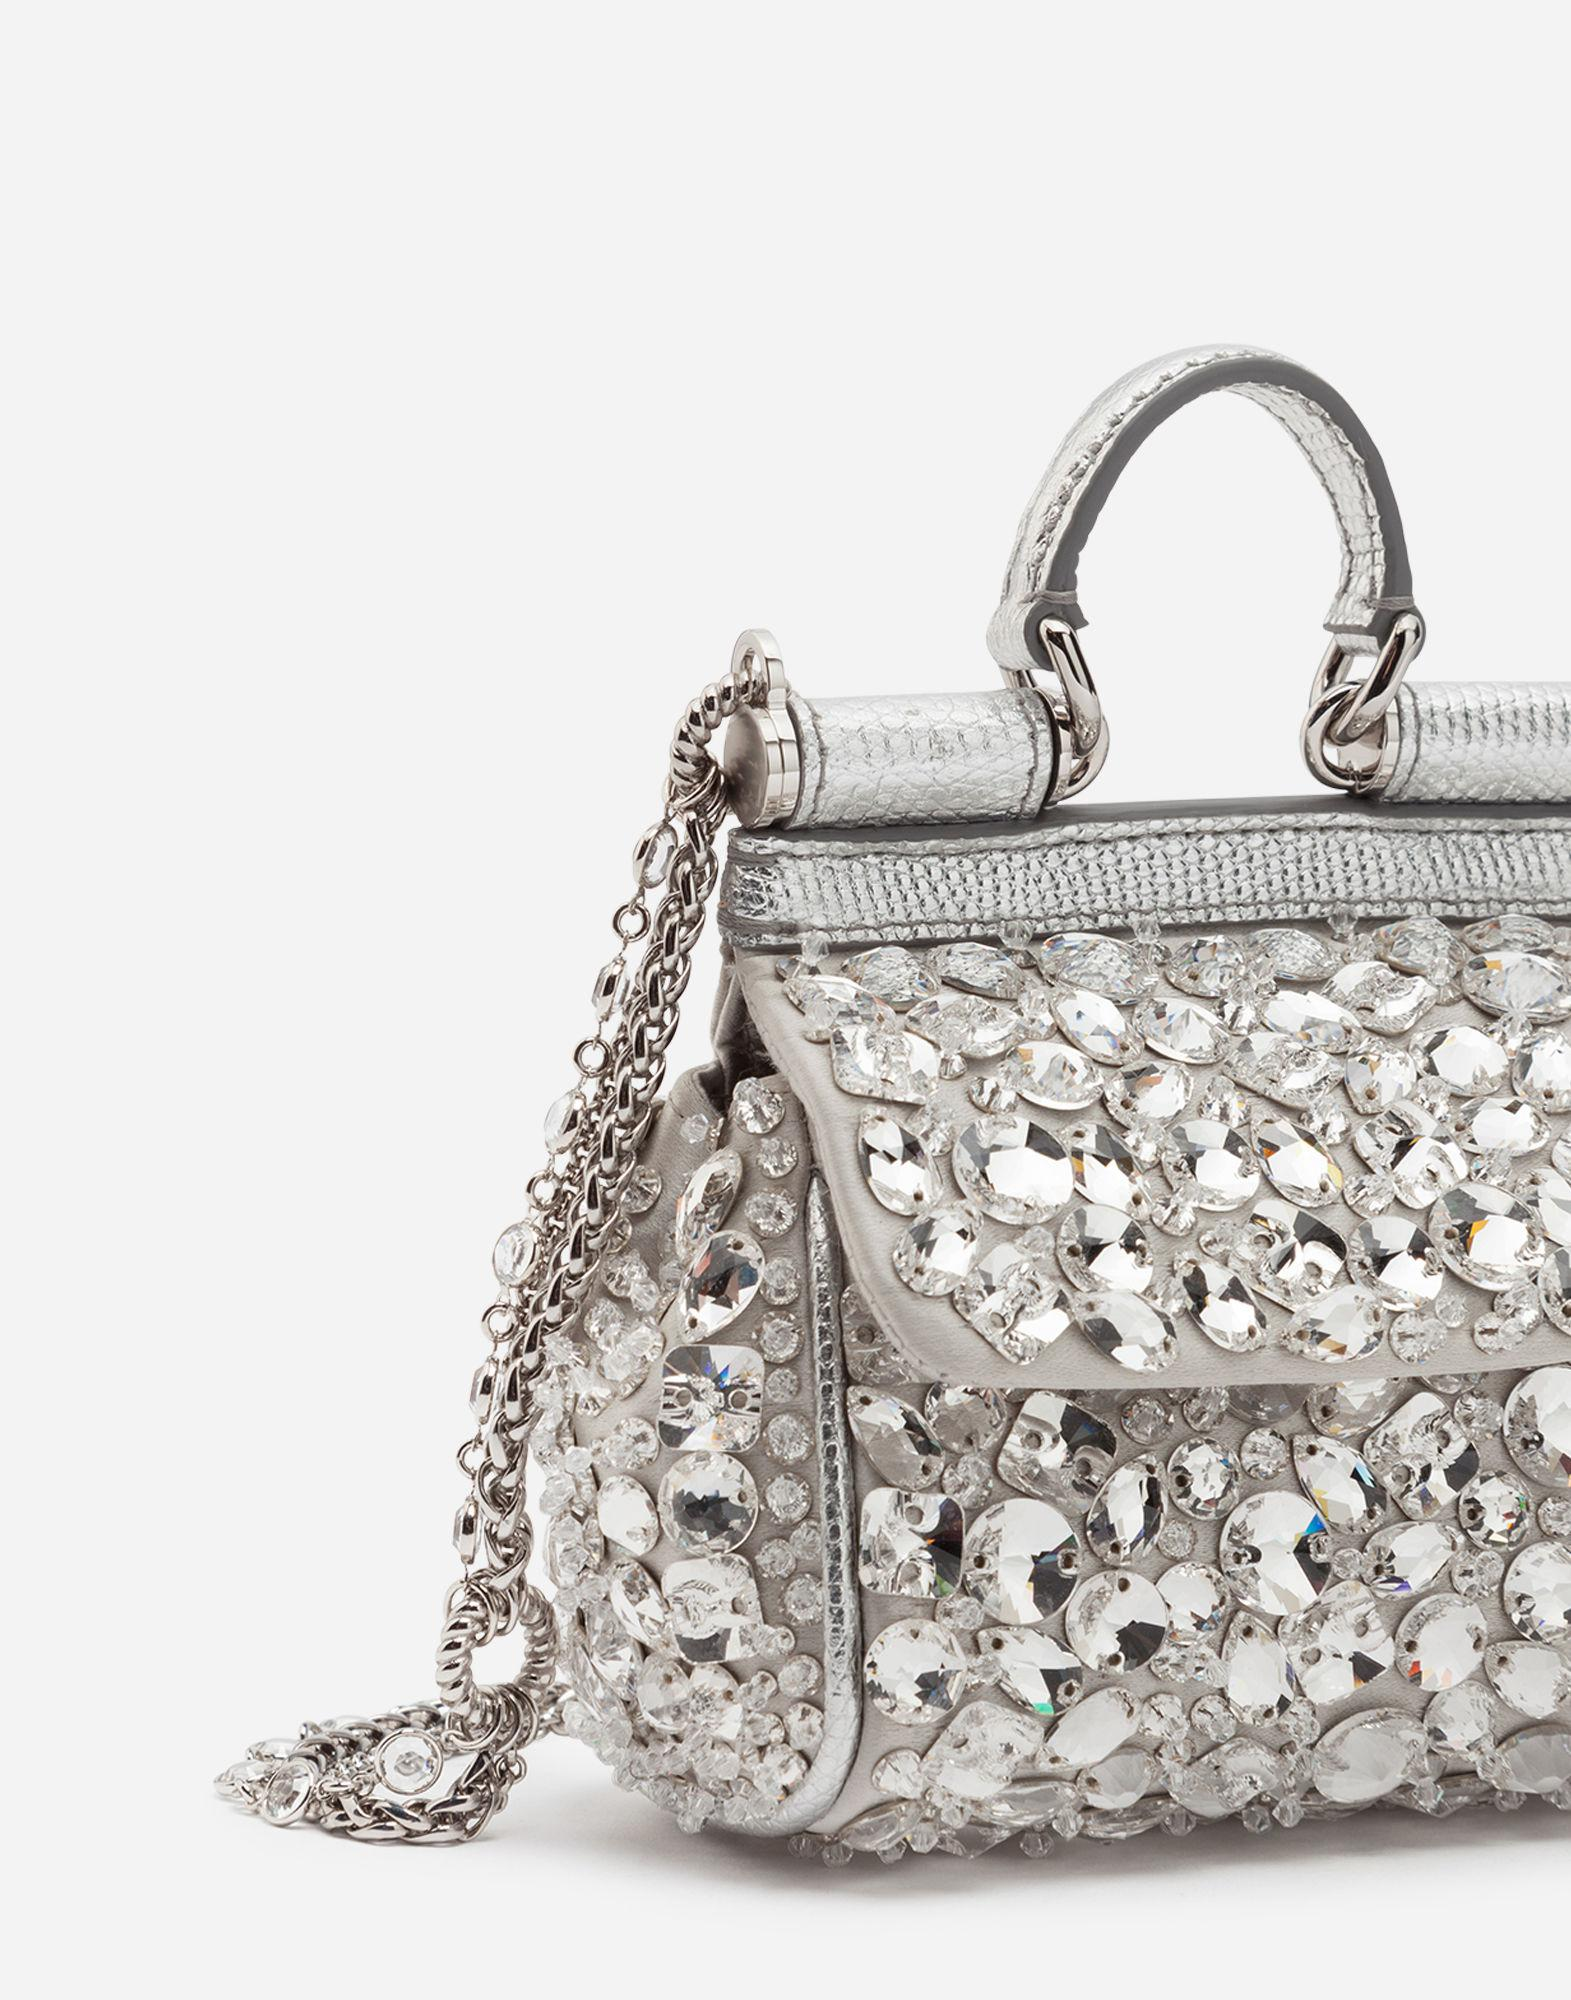 Lyst - Dolce Gabbana Micro Sicily Bag In Satin With Embroideries in  Metallic outlet store 925c5  Dolce and Gabbana Yellow Lizard Embossed  Leather ... 985740ed83ecc